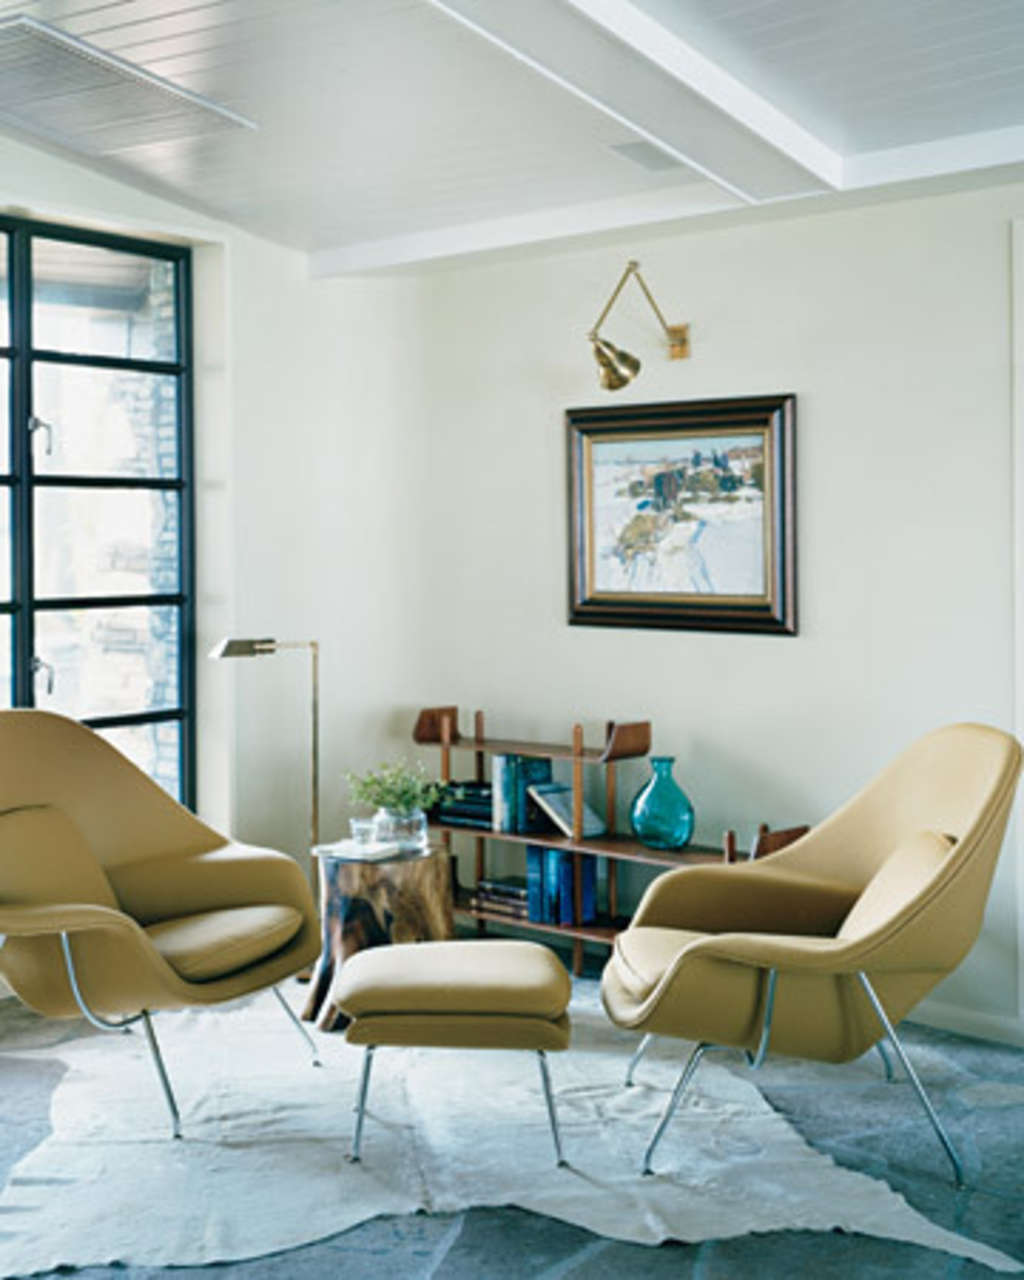 I M Glad I Exist Small Space Solutions: 5 Small Space Tips That Actually Work